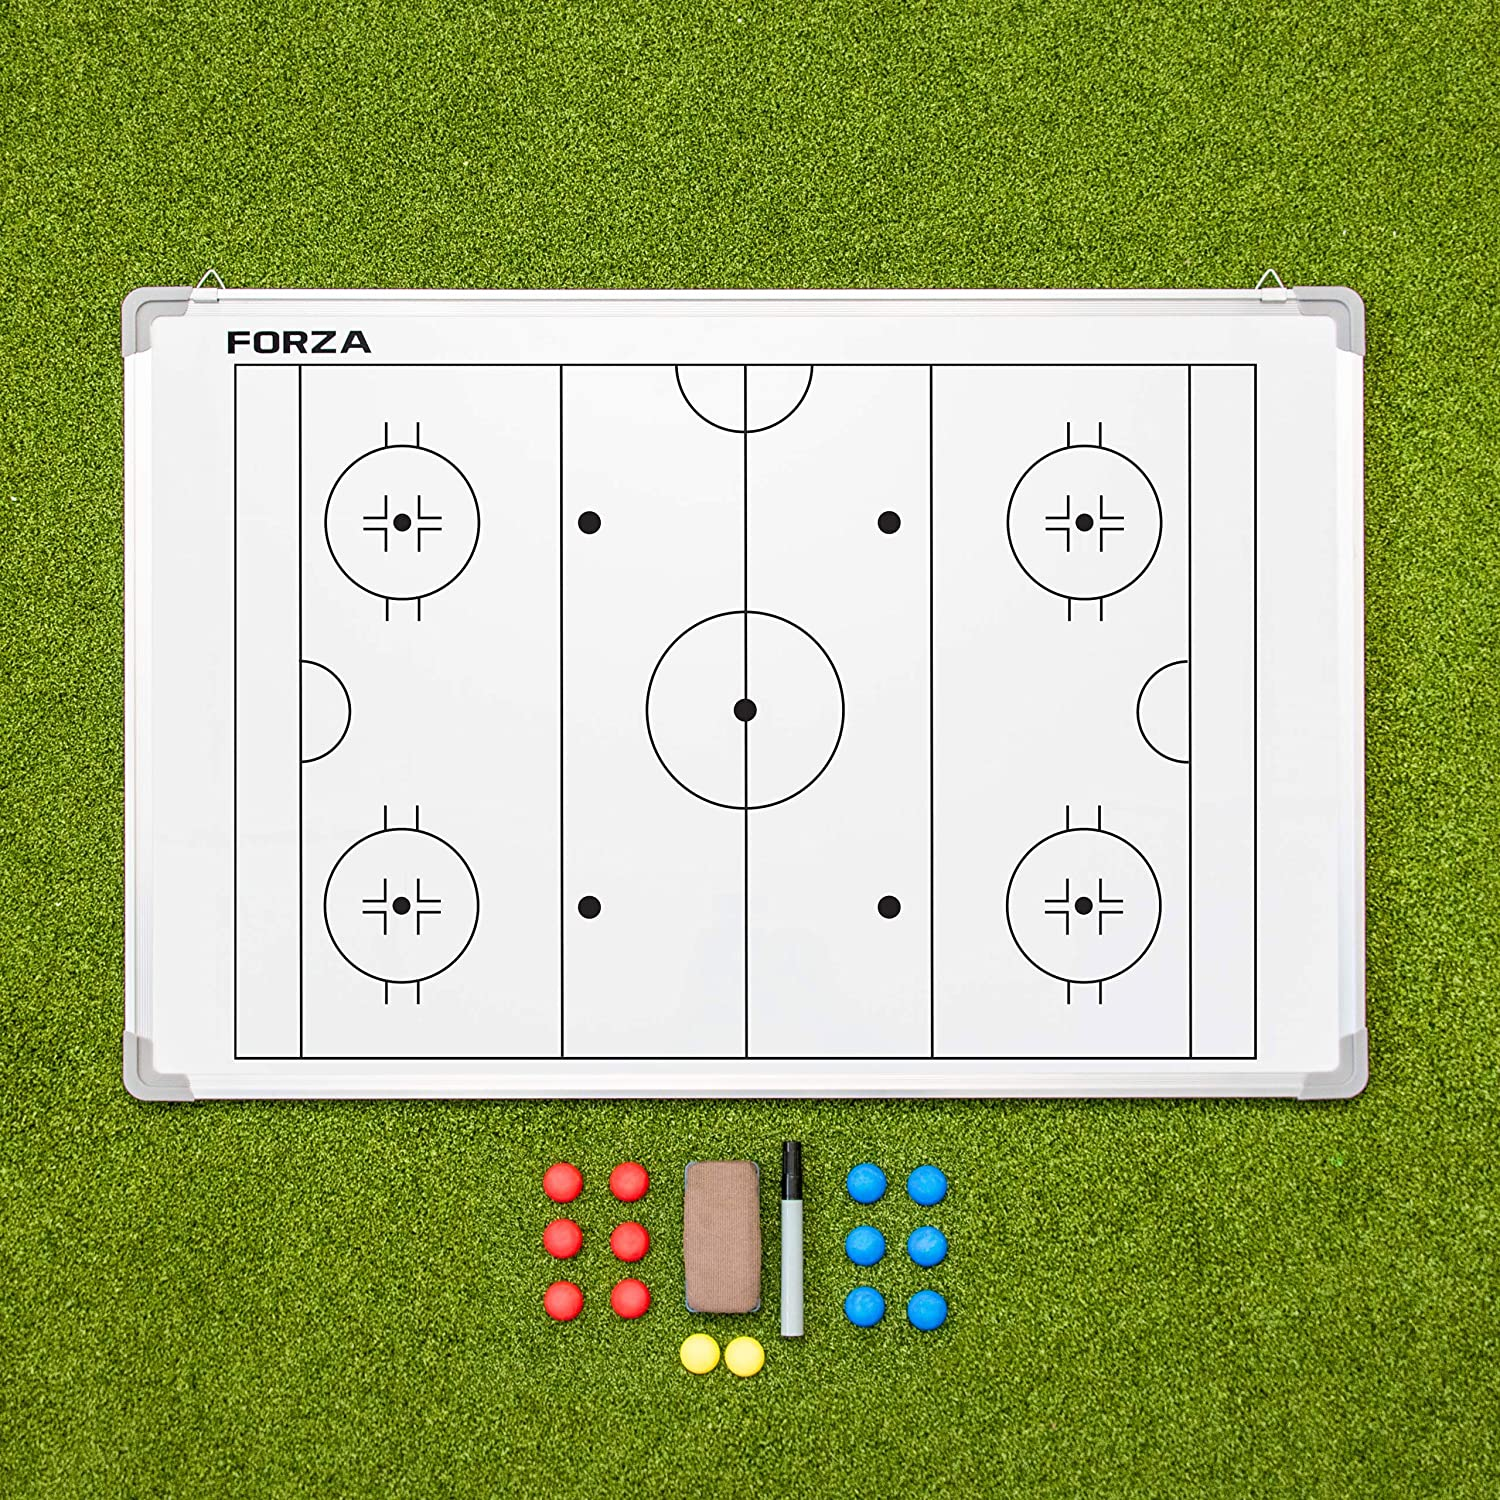 FORZA 日本未発売 18in x 12in Coaching Tactics Options Sport 13 オンライン限定商品 D Boards